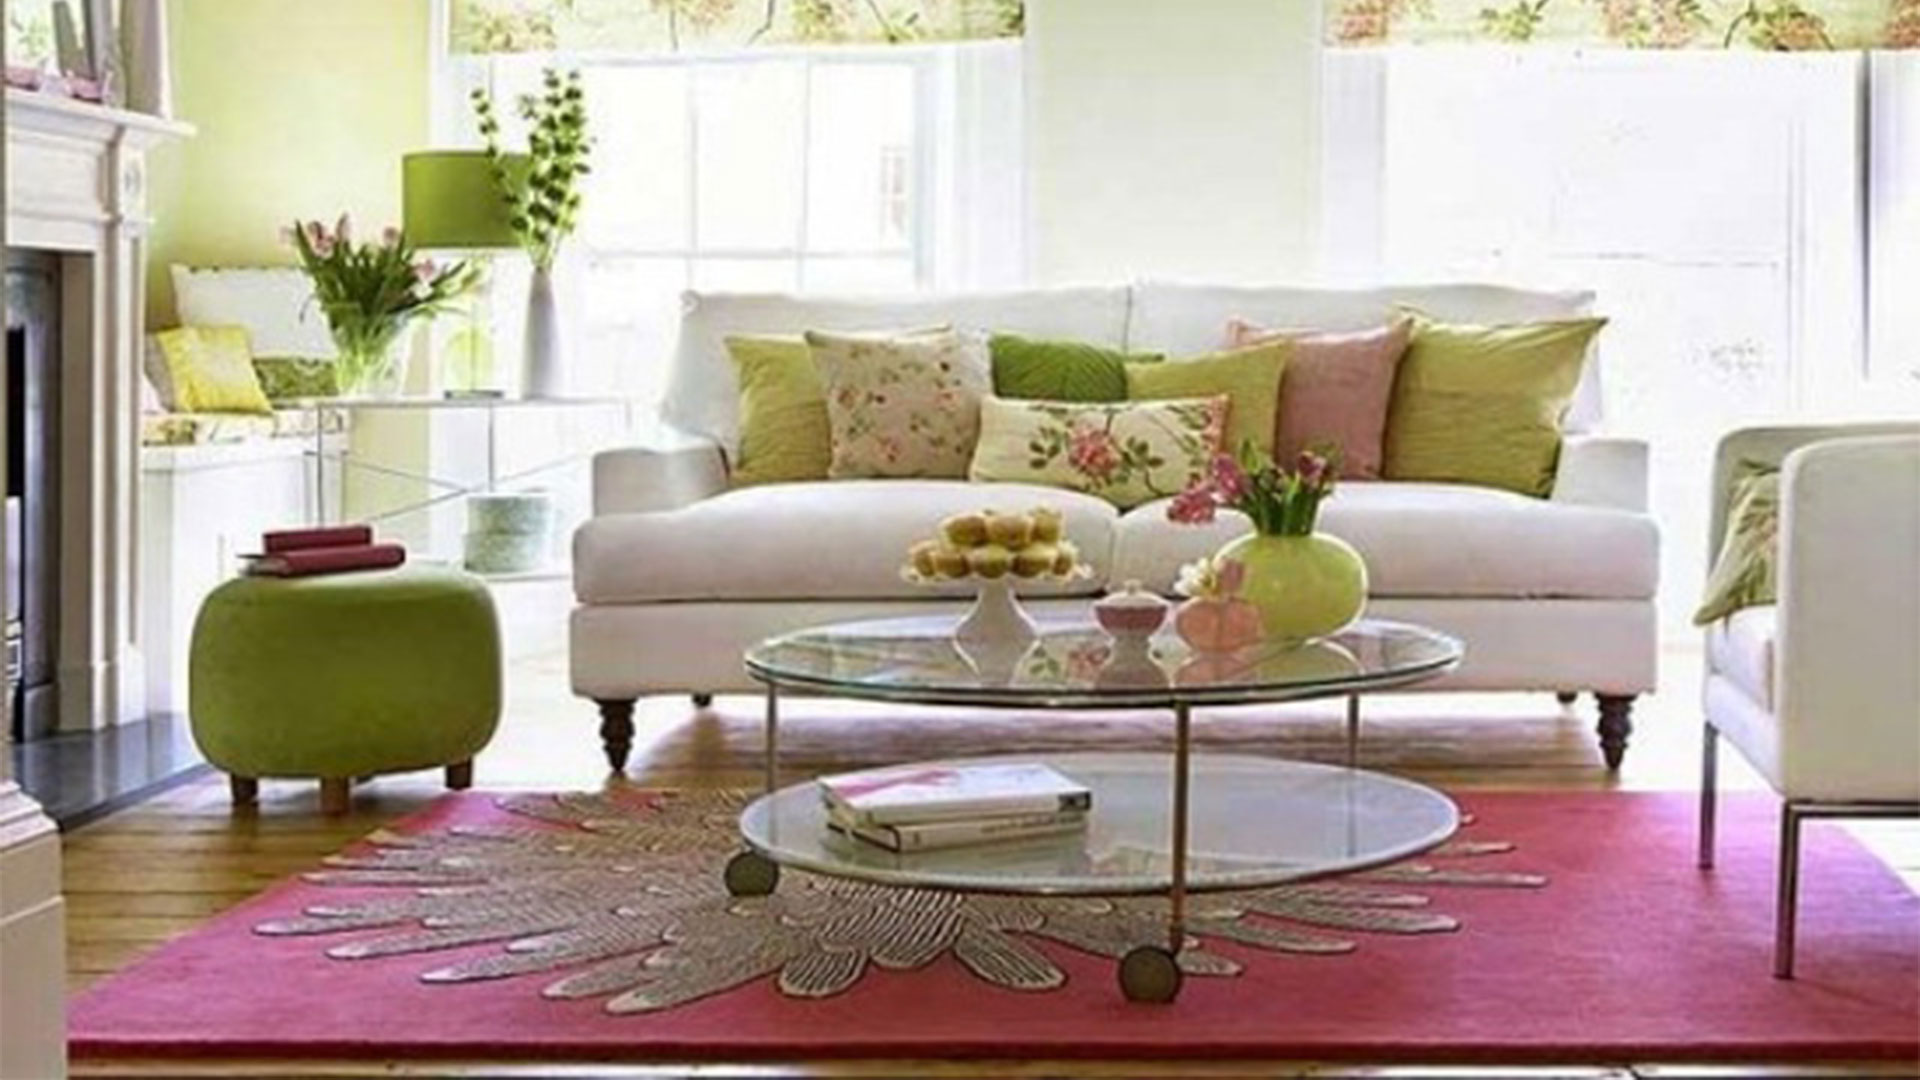 36 living room decorating ideas that smells like spring for Decorative ideas for small living room